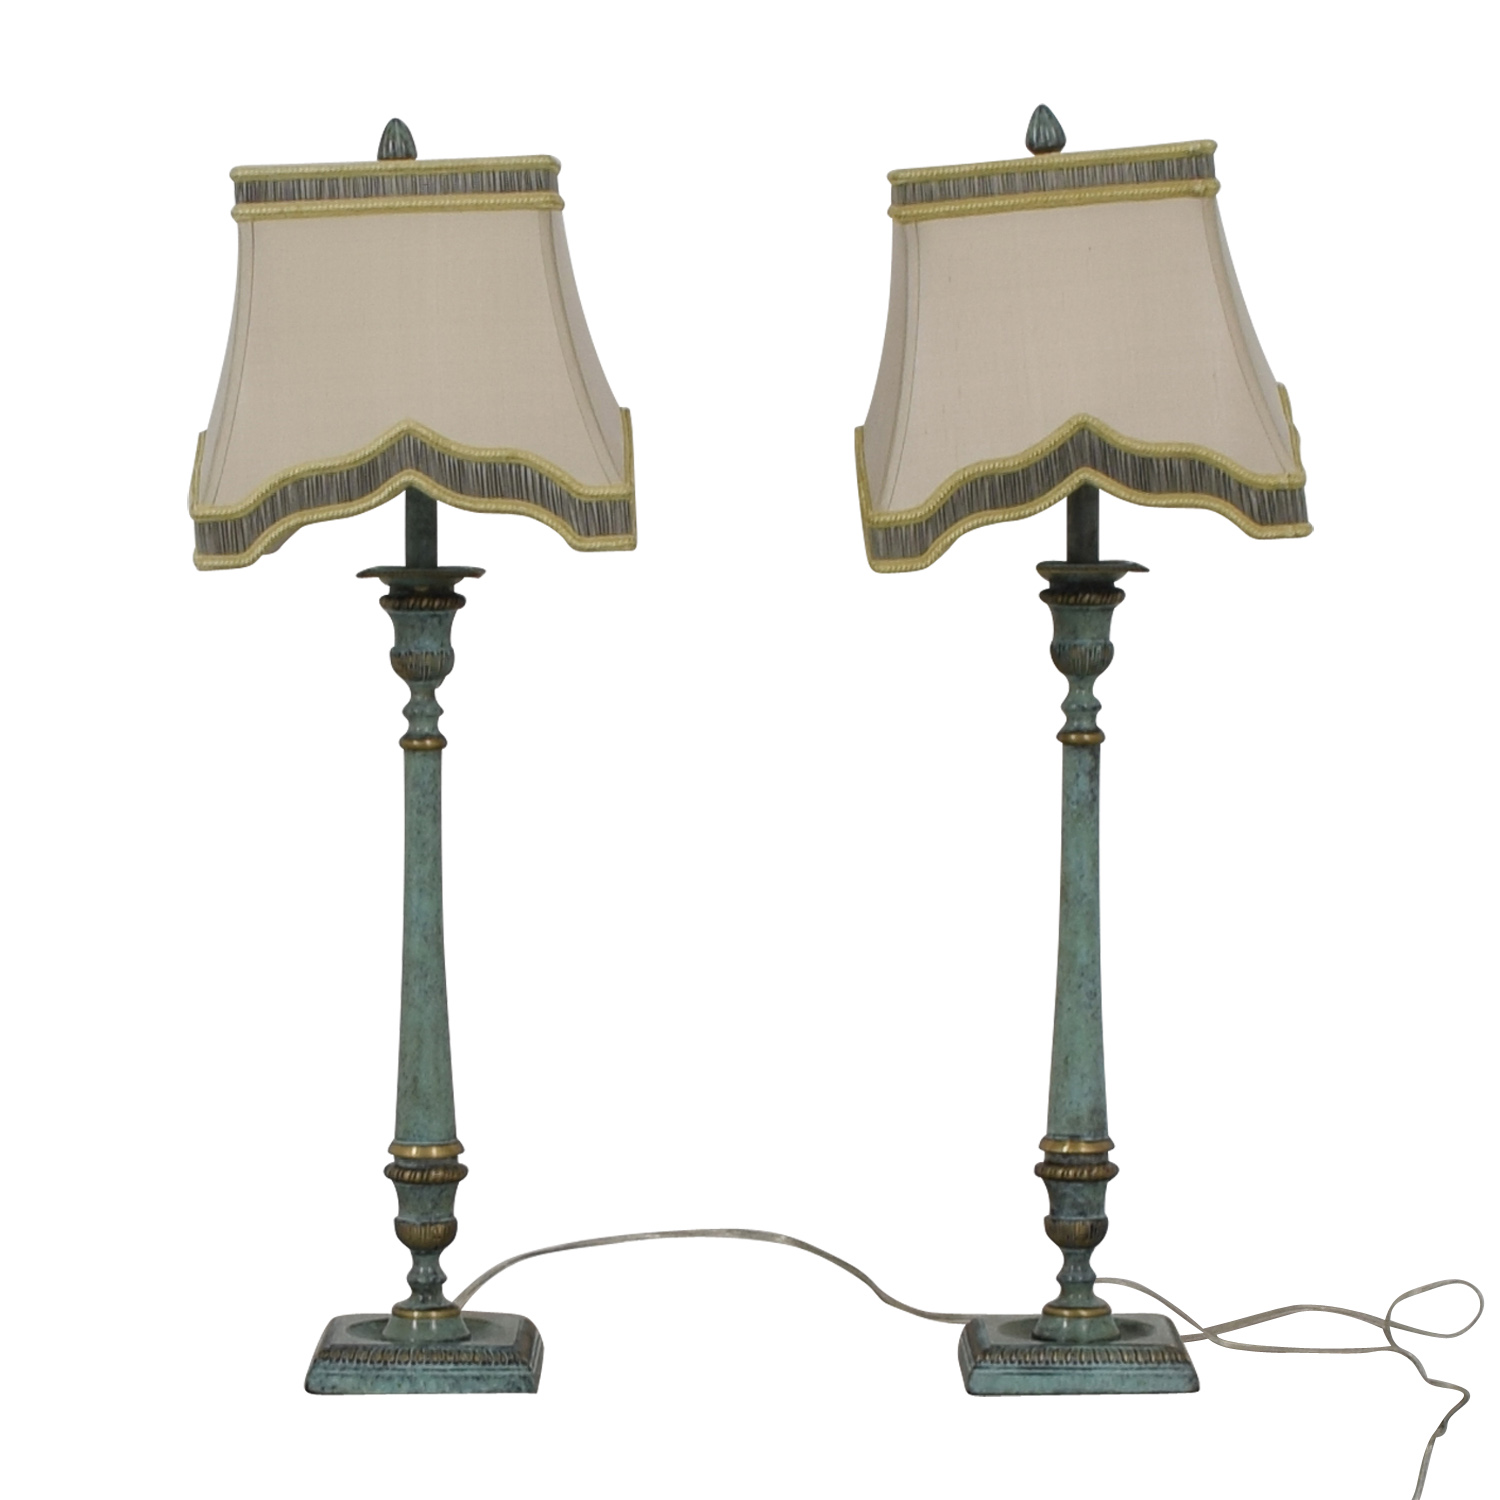 John-Richard John-Richard Antique Candlestick Lamps